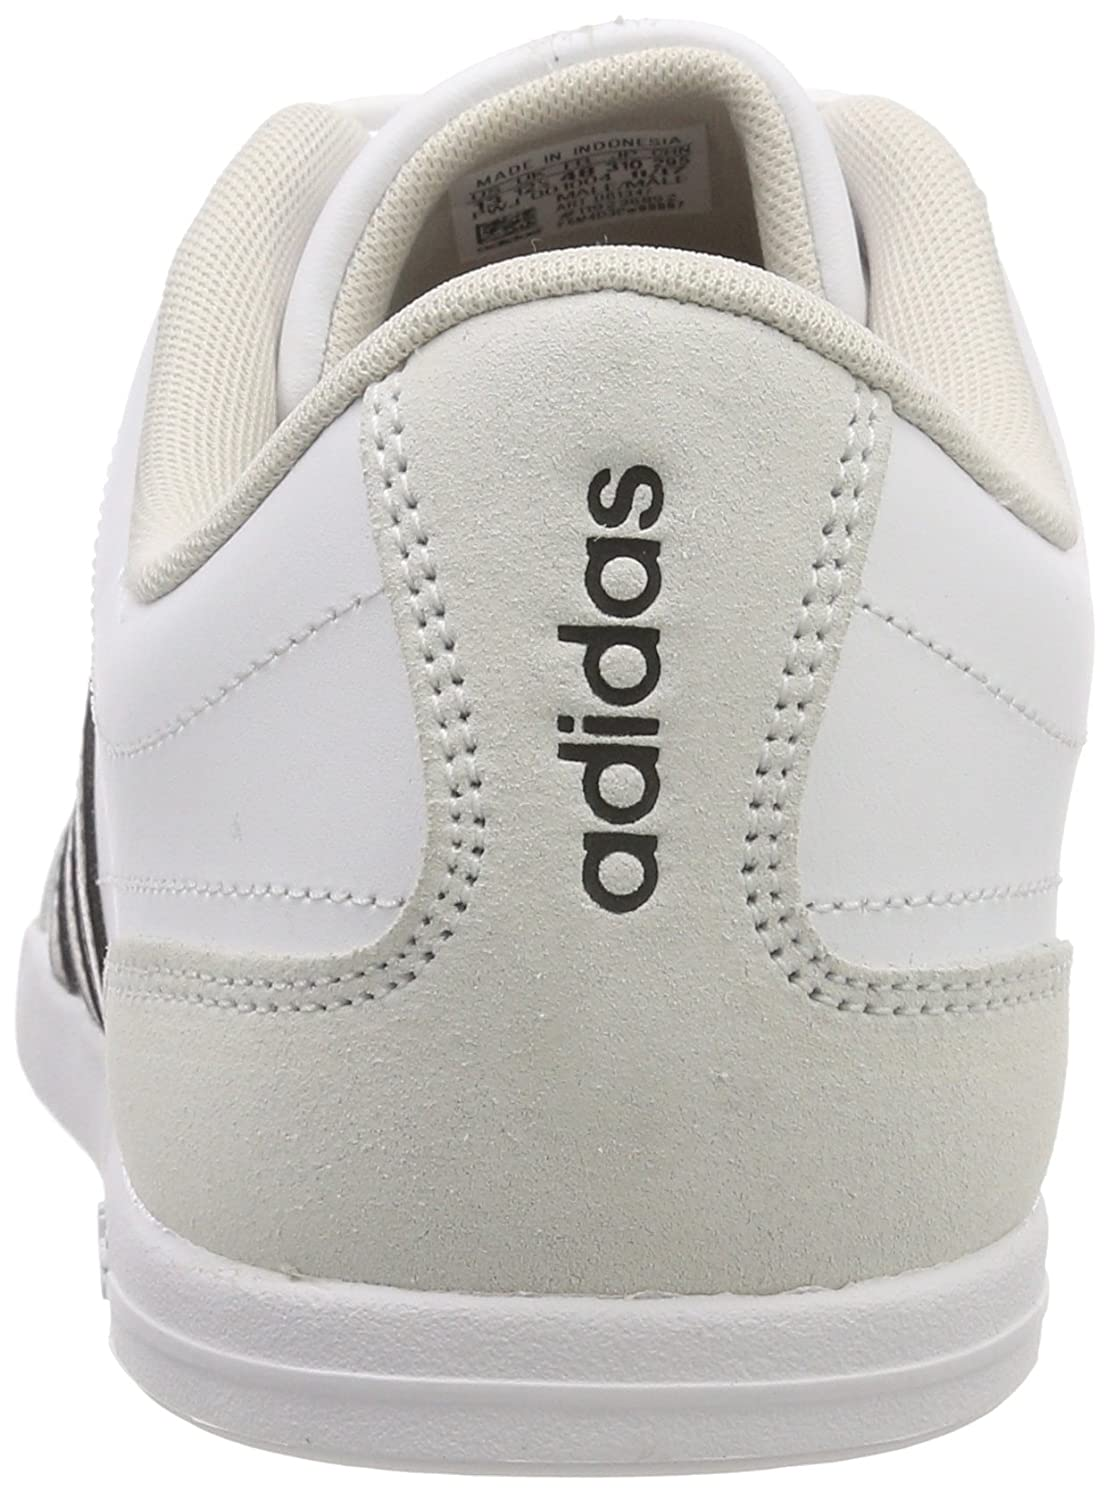 Basses Adidas Homme CaflaireSneakers CaflaireSneakers Adidas Basses SVzMUp